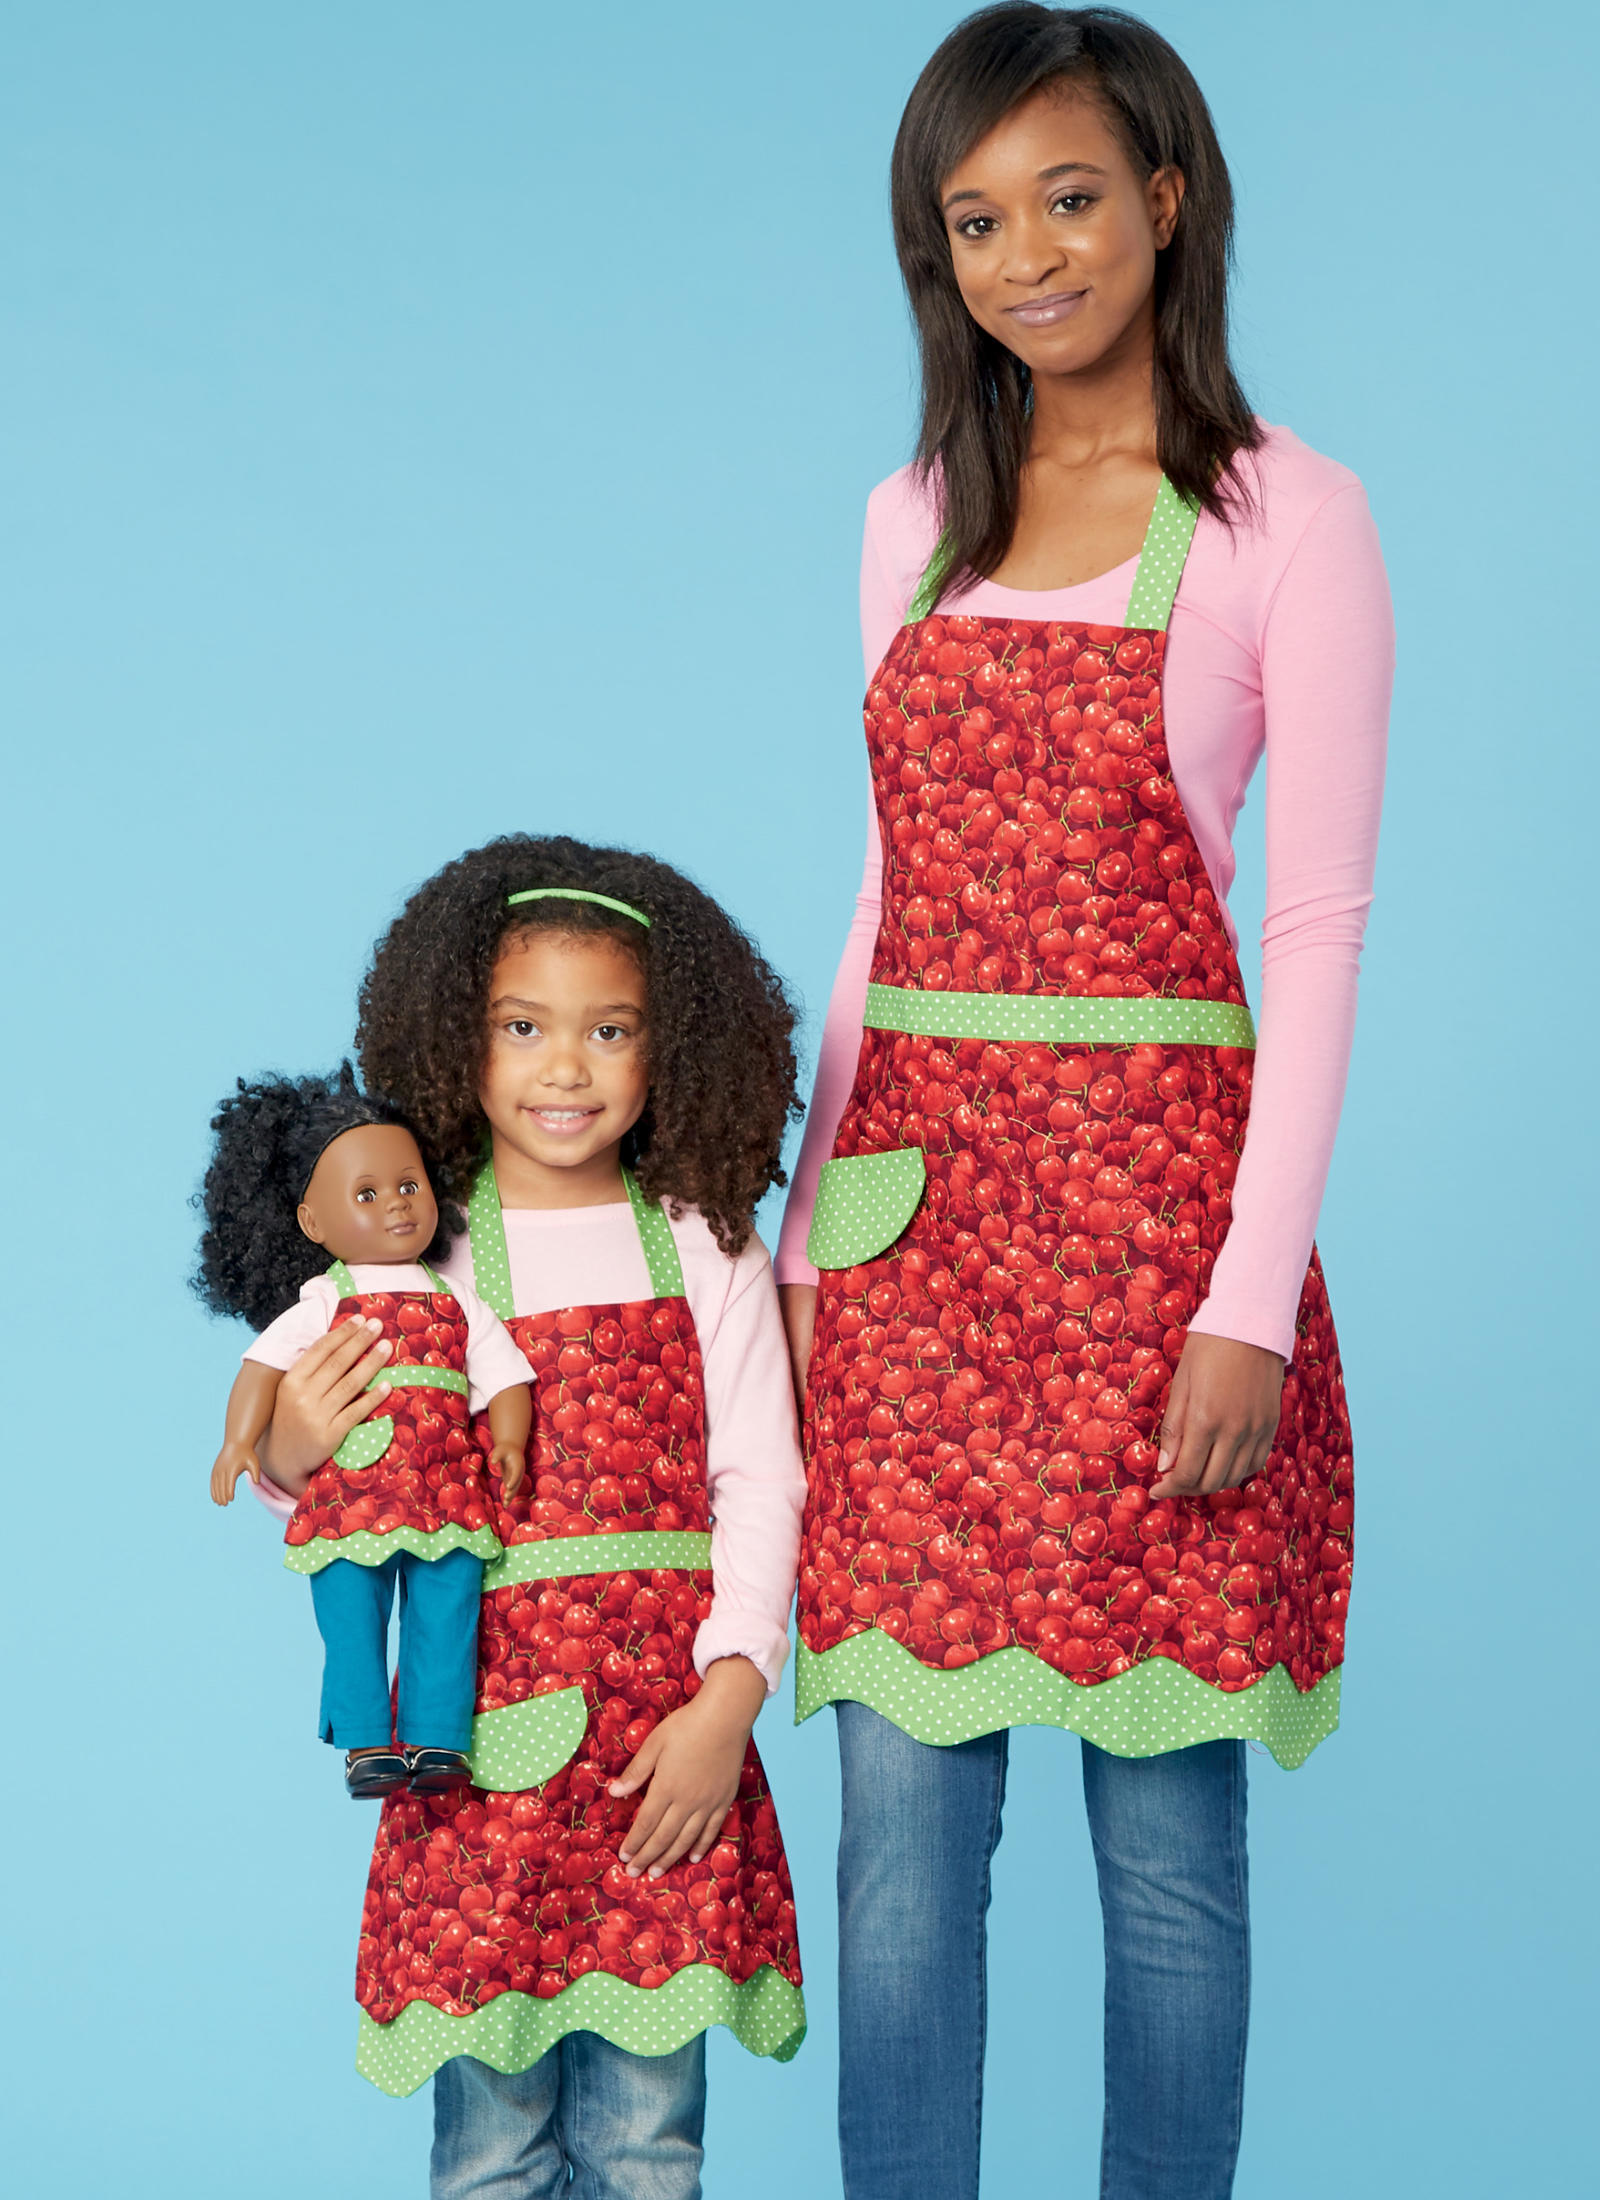 APRON Misses&;, Girlsand 18 Inch Doll K255